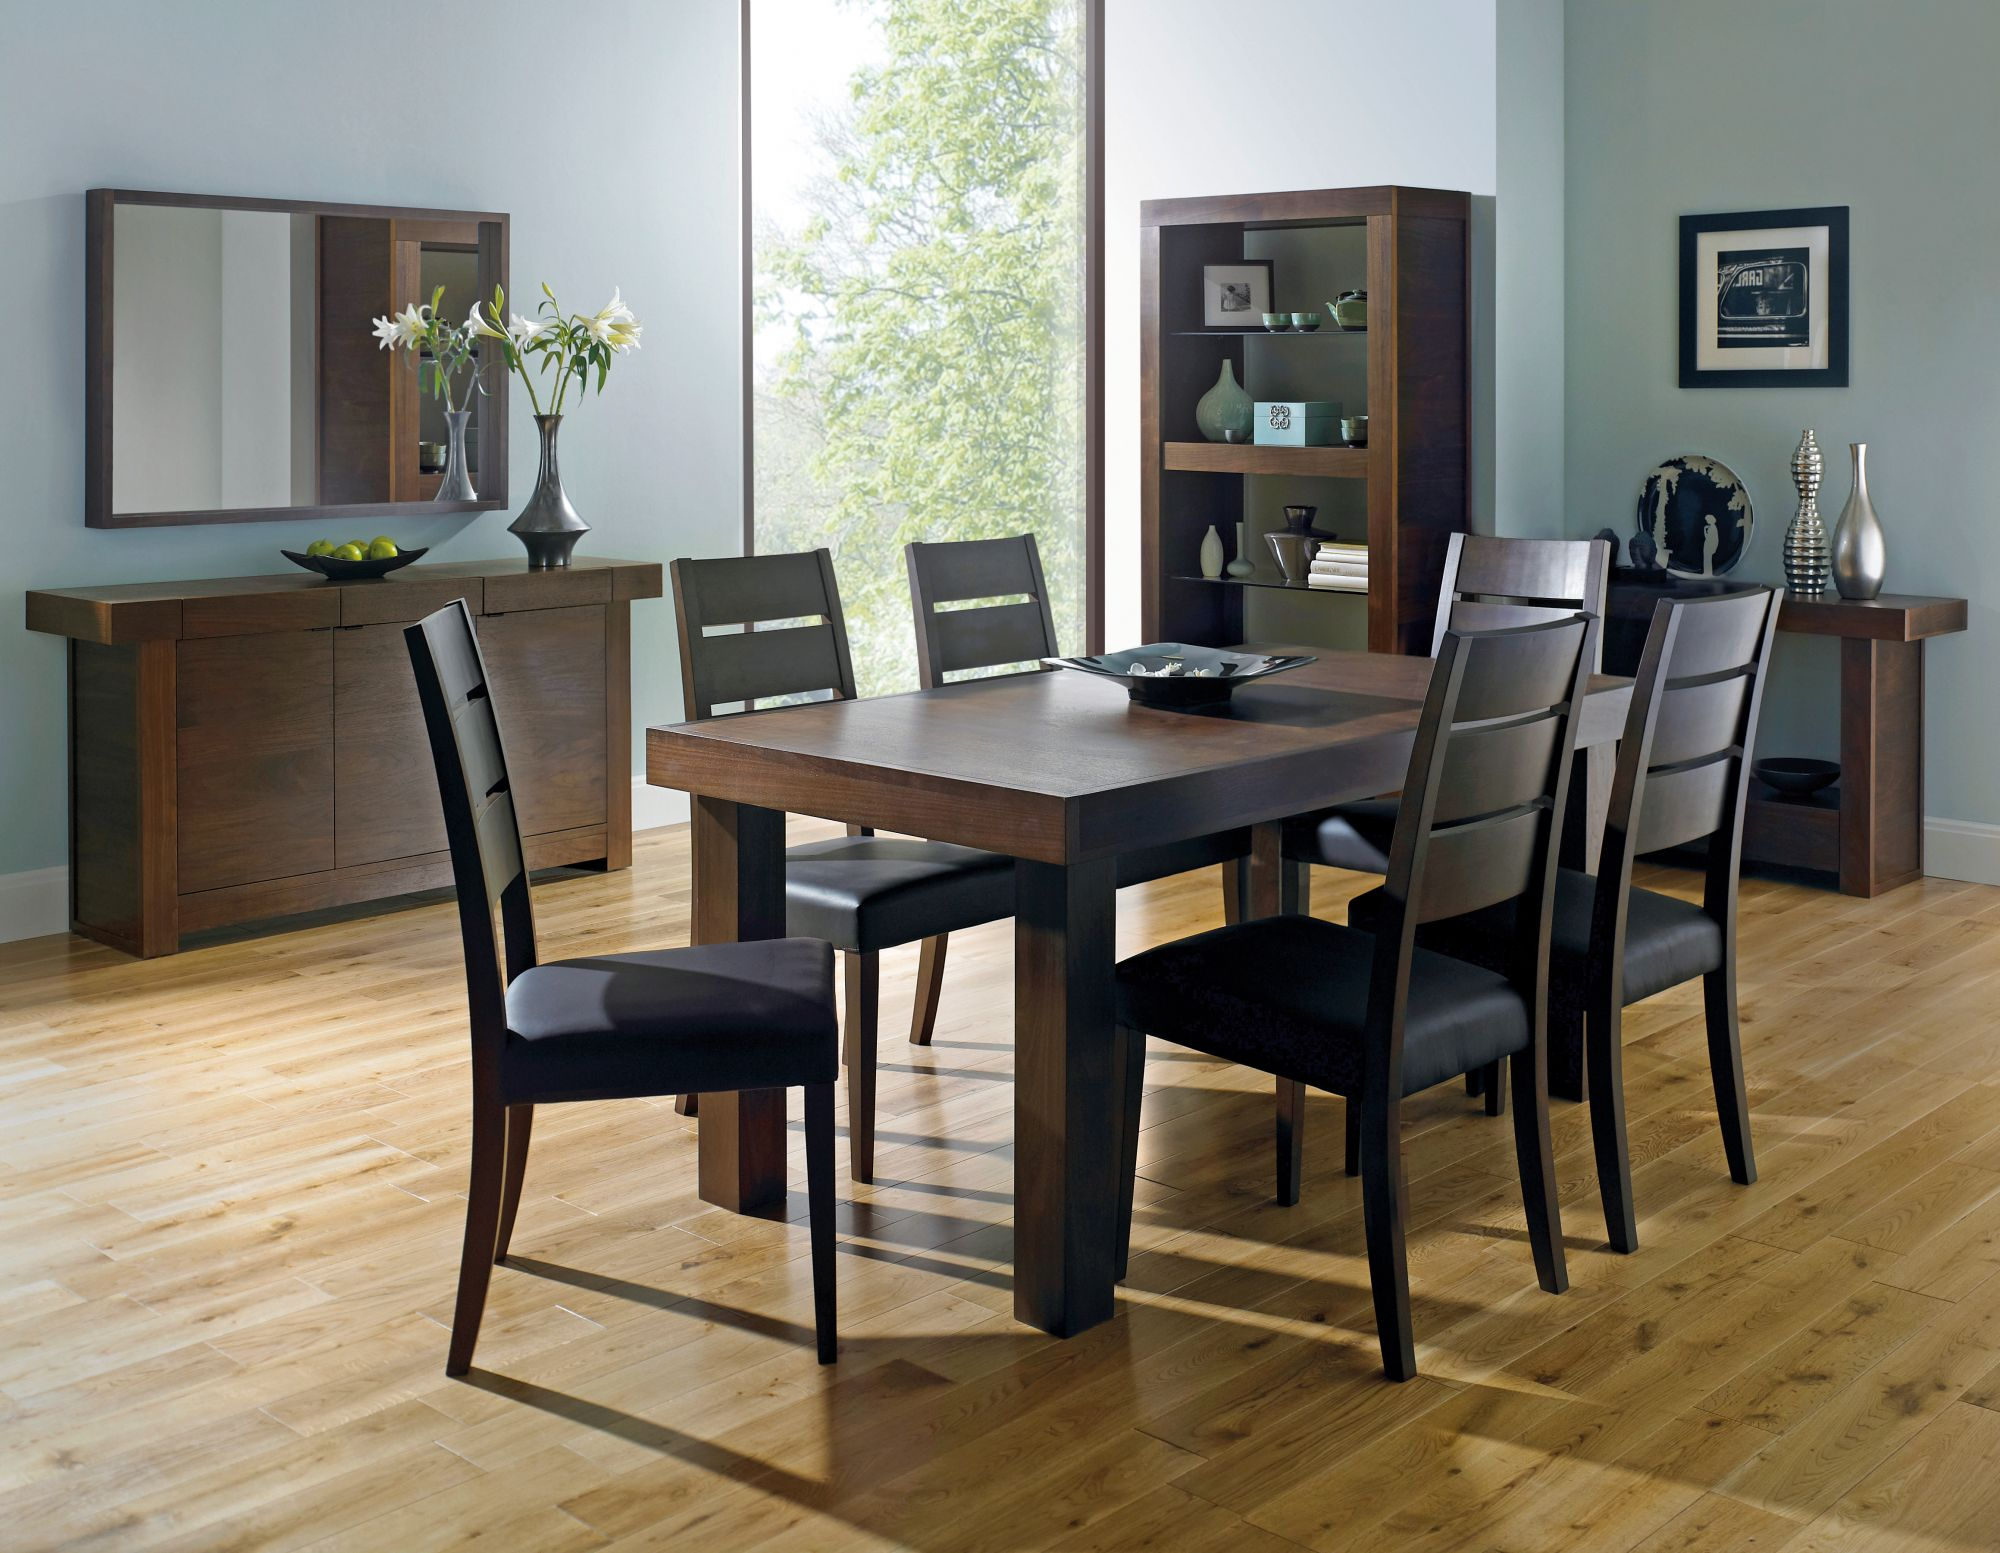 Bentley Designs Akita Walnut Panel Dining Table + 6 Slatted Chairs